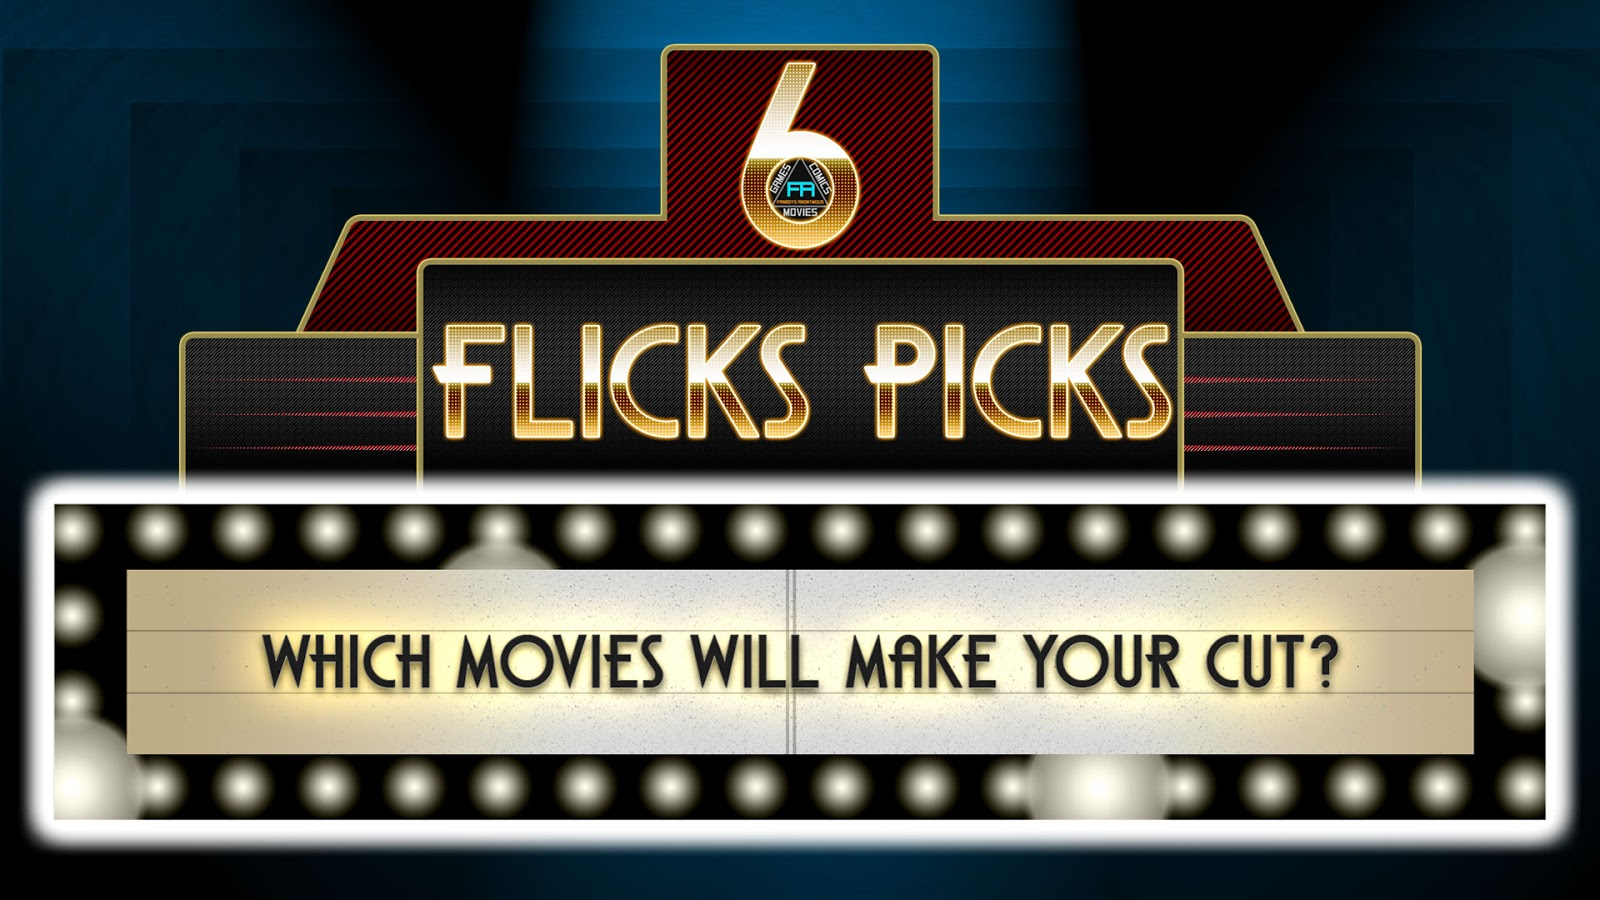 What movies are coming out March 2018 6 Flicks Picks